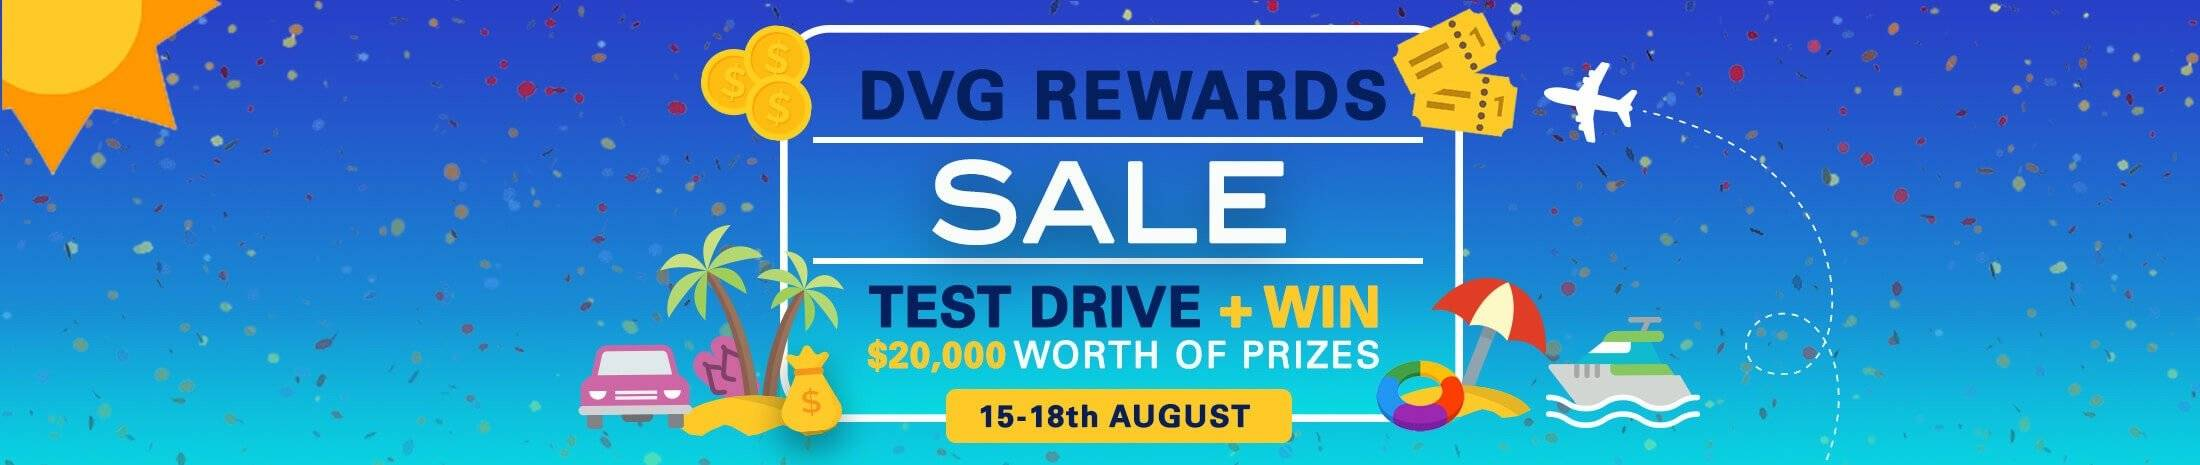 DVG-Rewards Sale